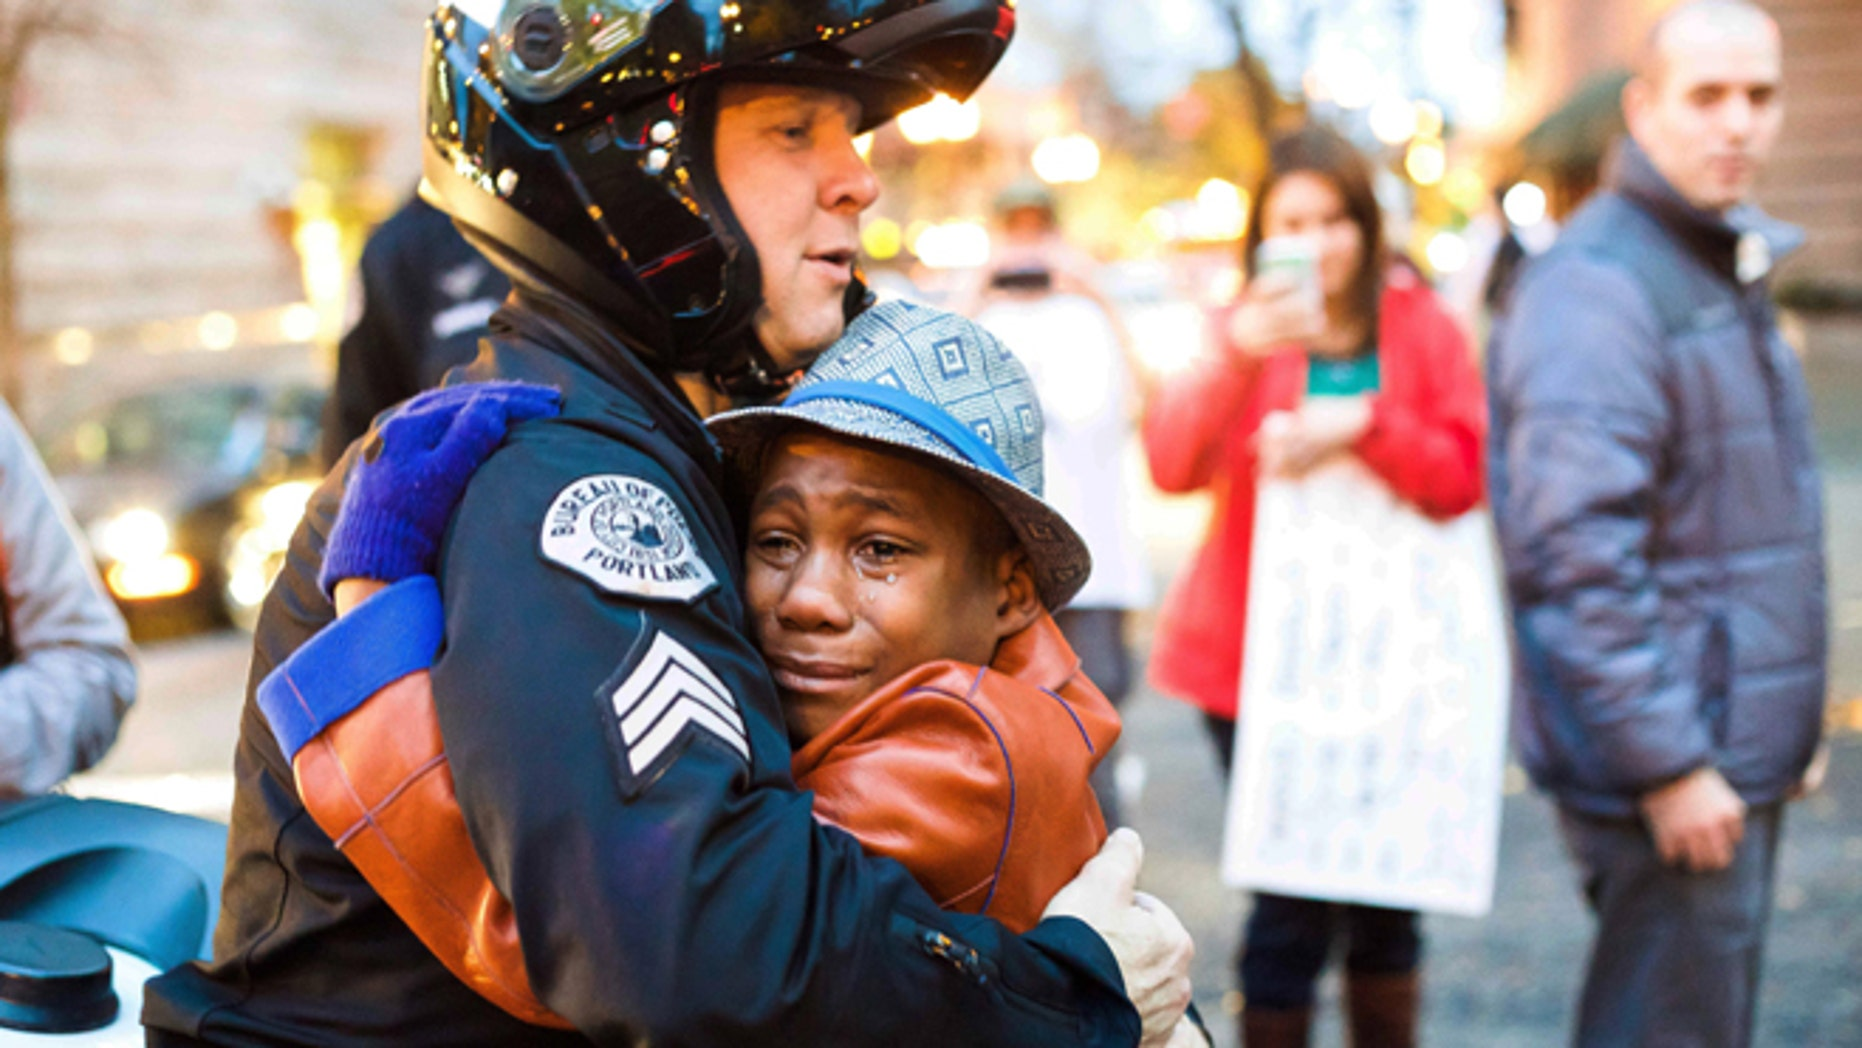 Nov. 25: Portland police Sgt. Bret Barnum, left, and Devonte Hart, 12, hug at a rally in Portland, Ore., where people had gathered in support of the protests in Ferguson, Mo.